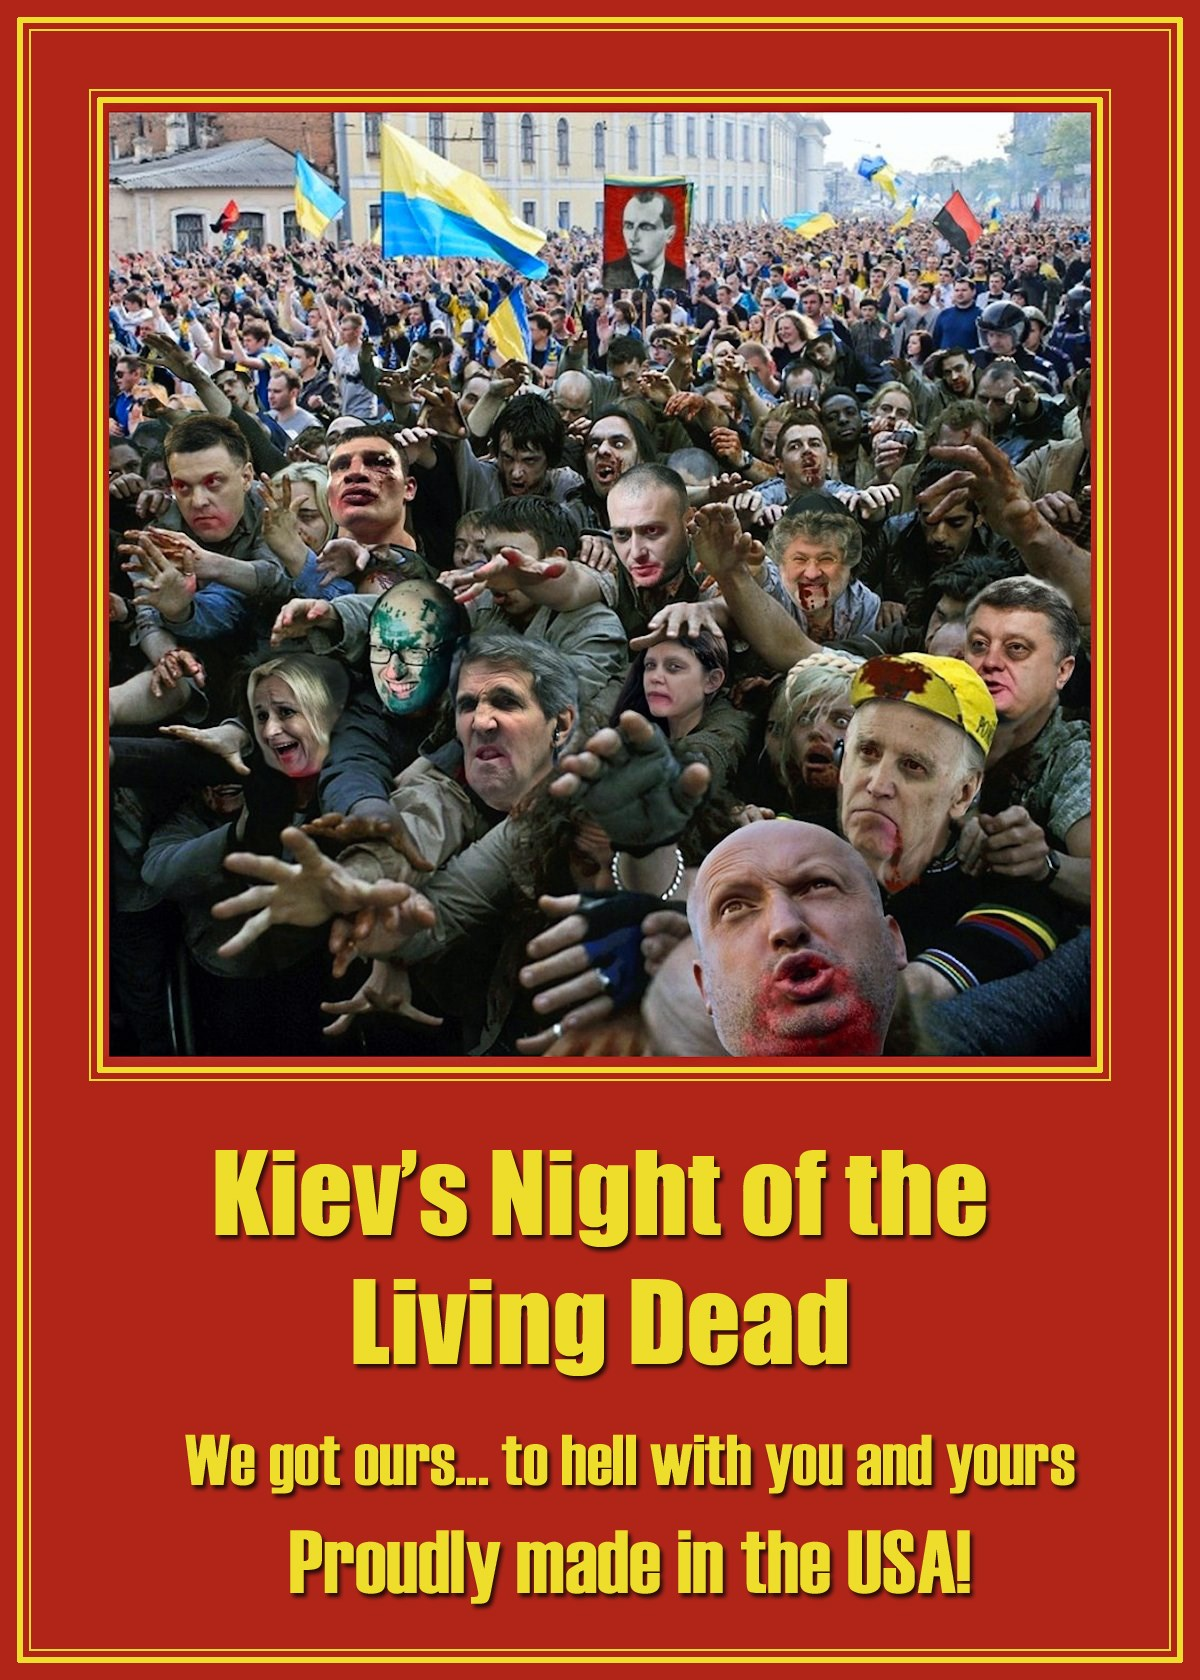 00 The Night of the Lving Dead. Kiev. 10.05.14